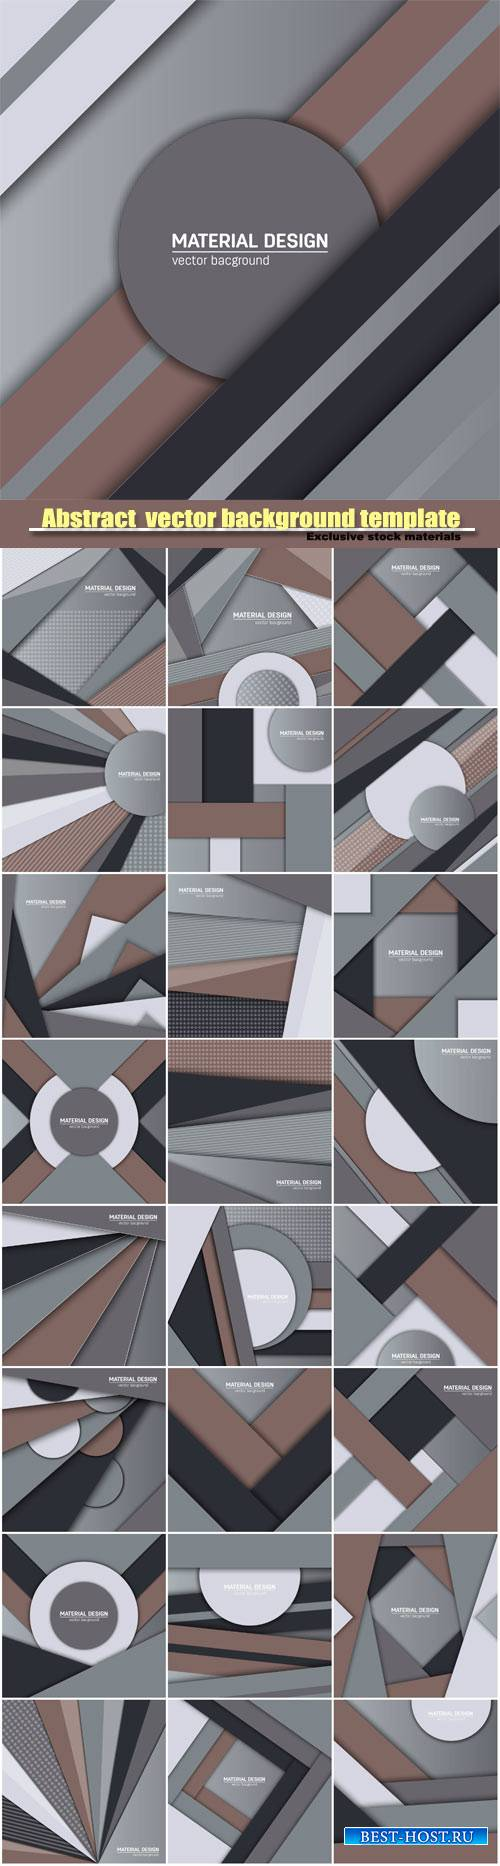 Abstract creative layout vector background template #3